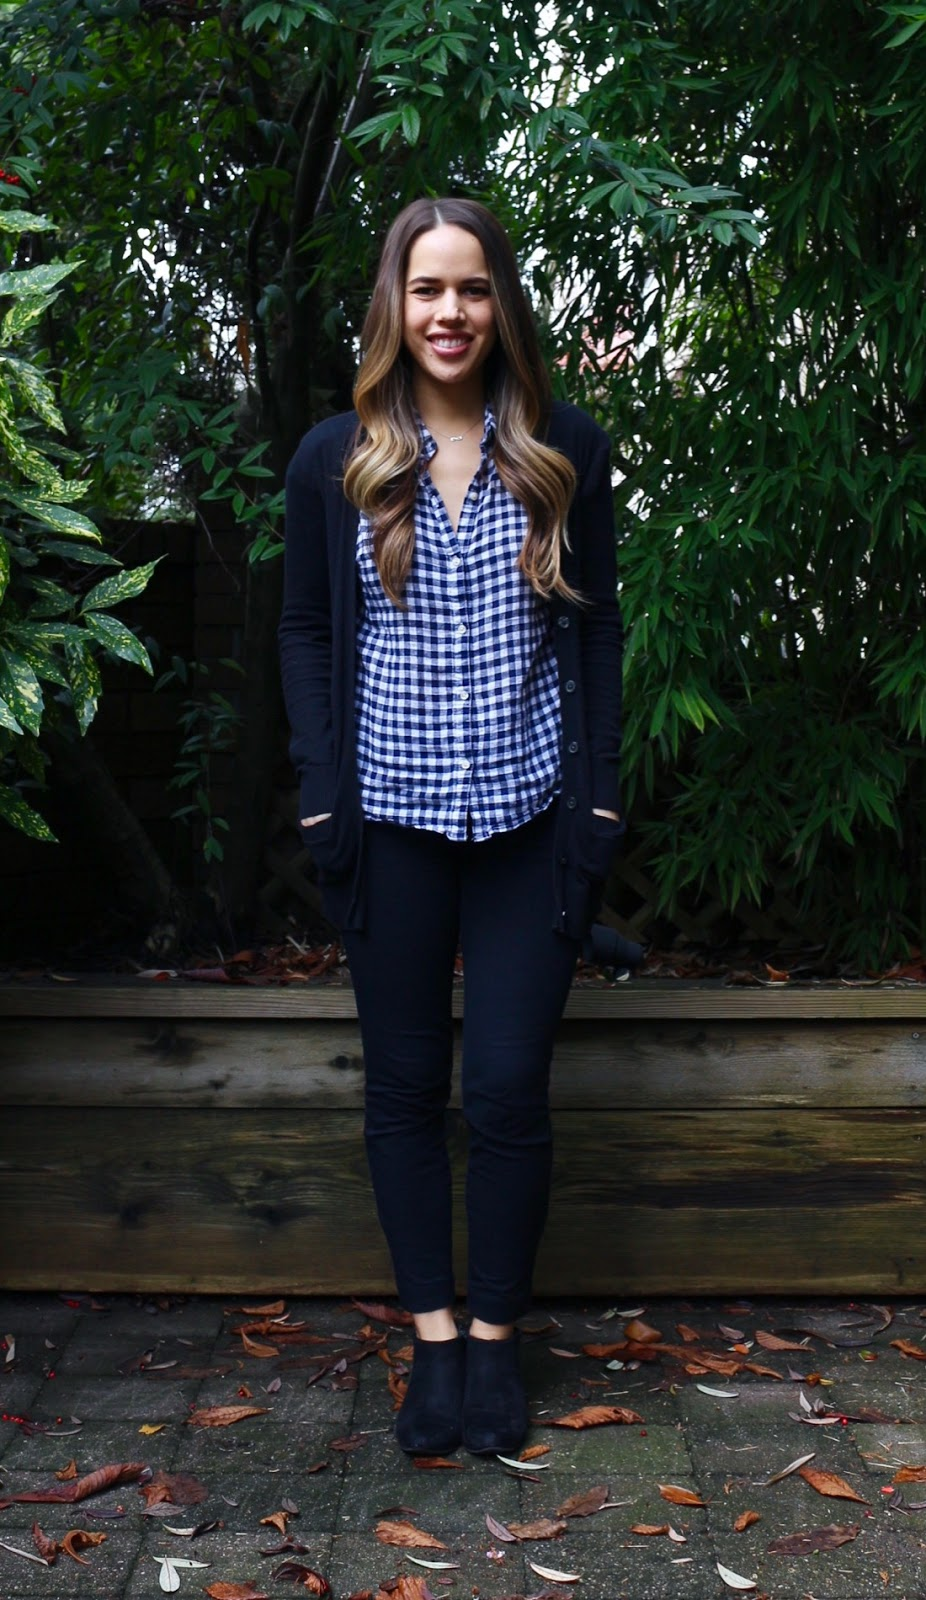 Jules in Flats - Gingham Shirt Outfit Idea (Business Casual Winter Workwear on a Budget)